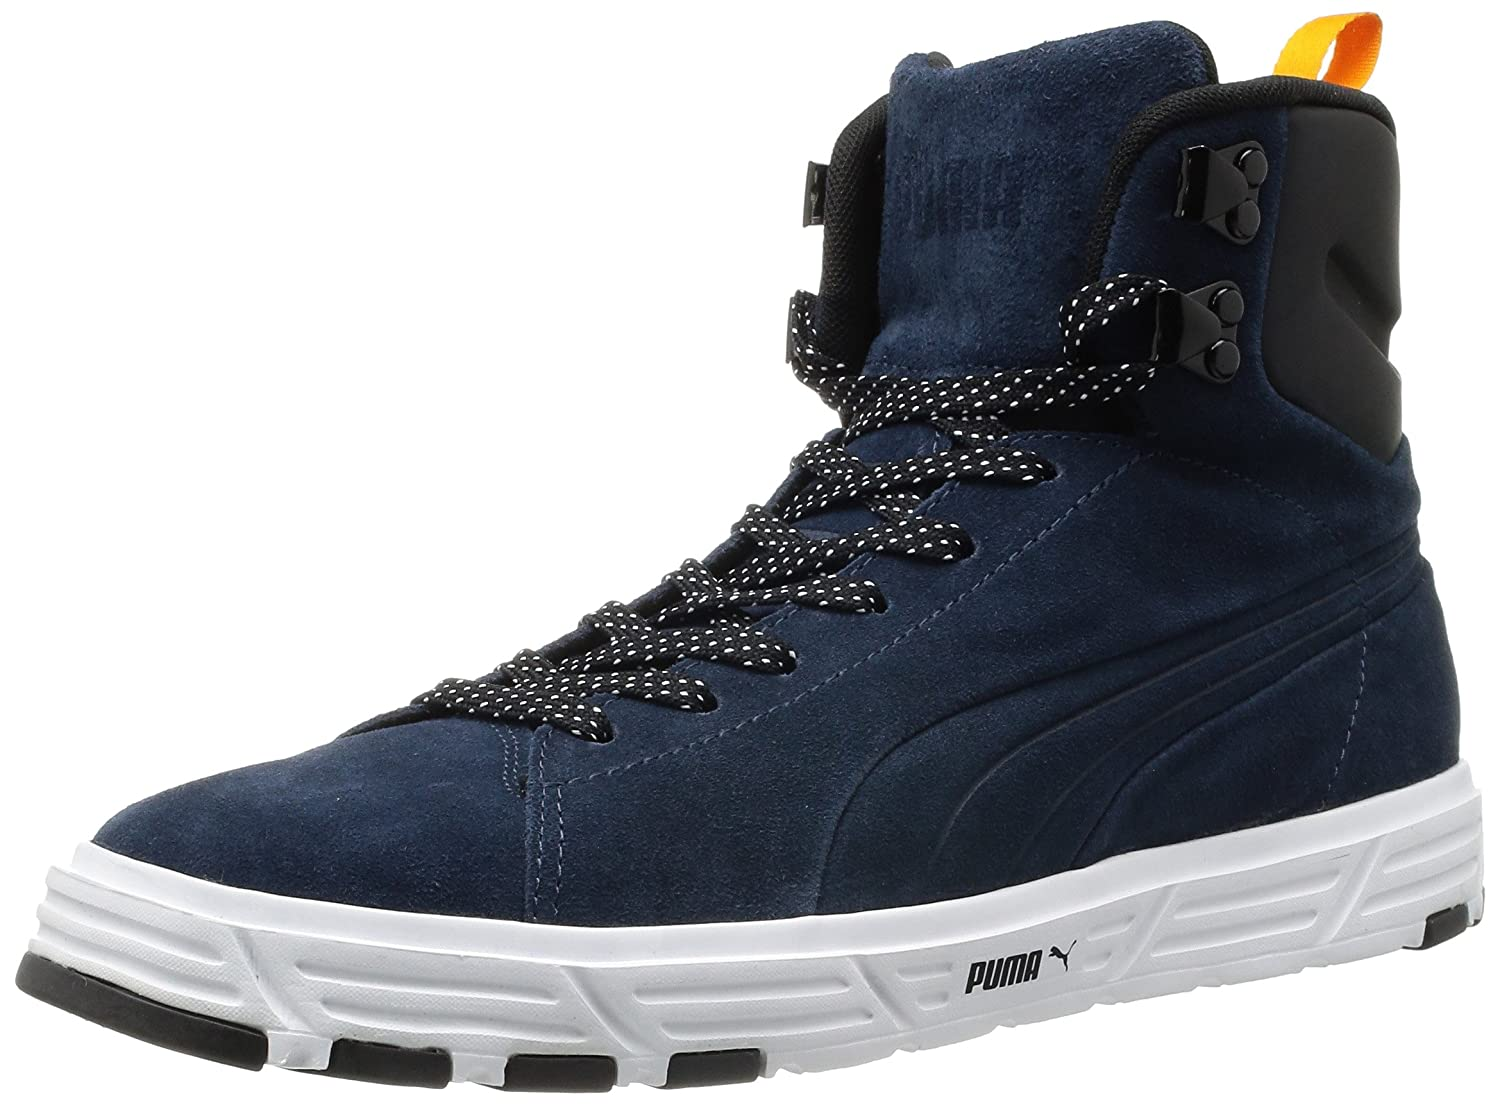 best cheap 07508 995cc Puma Future Suede Lite Boot Mens sneakers / Shoes - Blue Black - SIZE US  11.5 | $84.99 - Buy today!